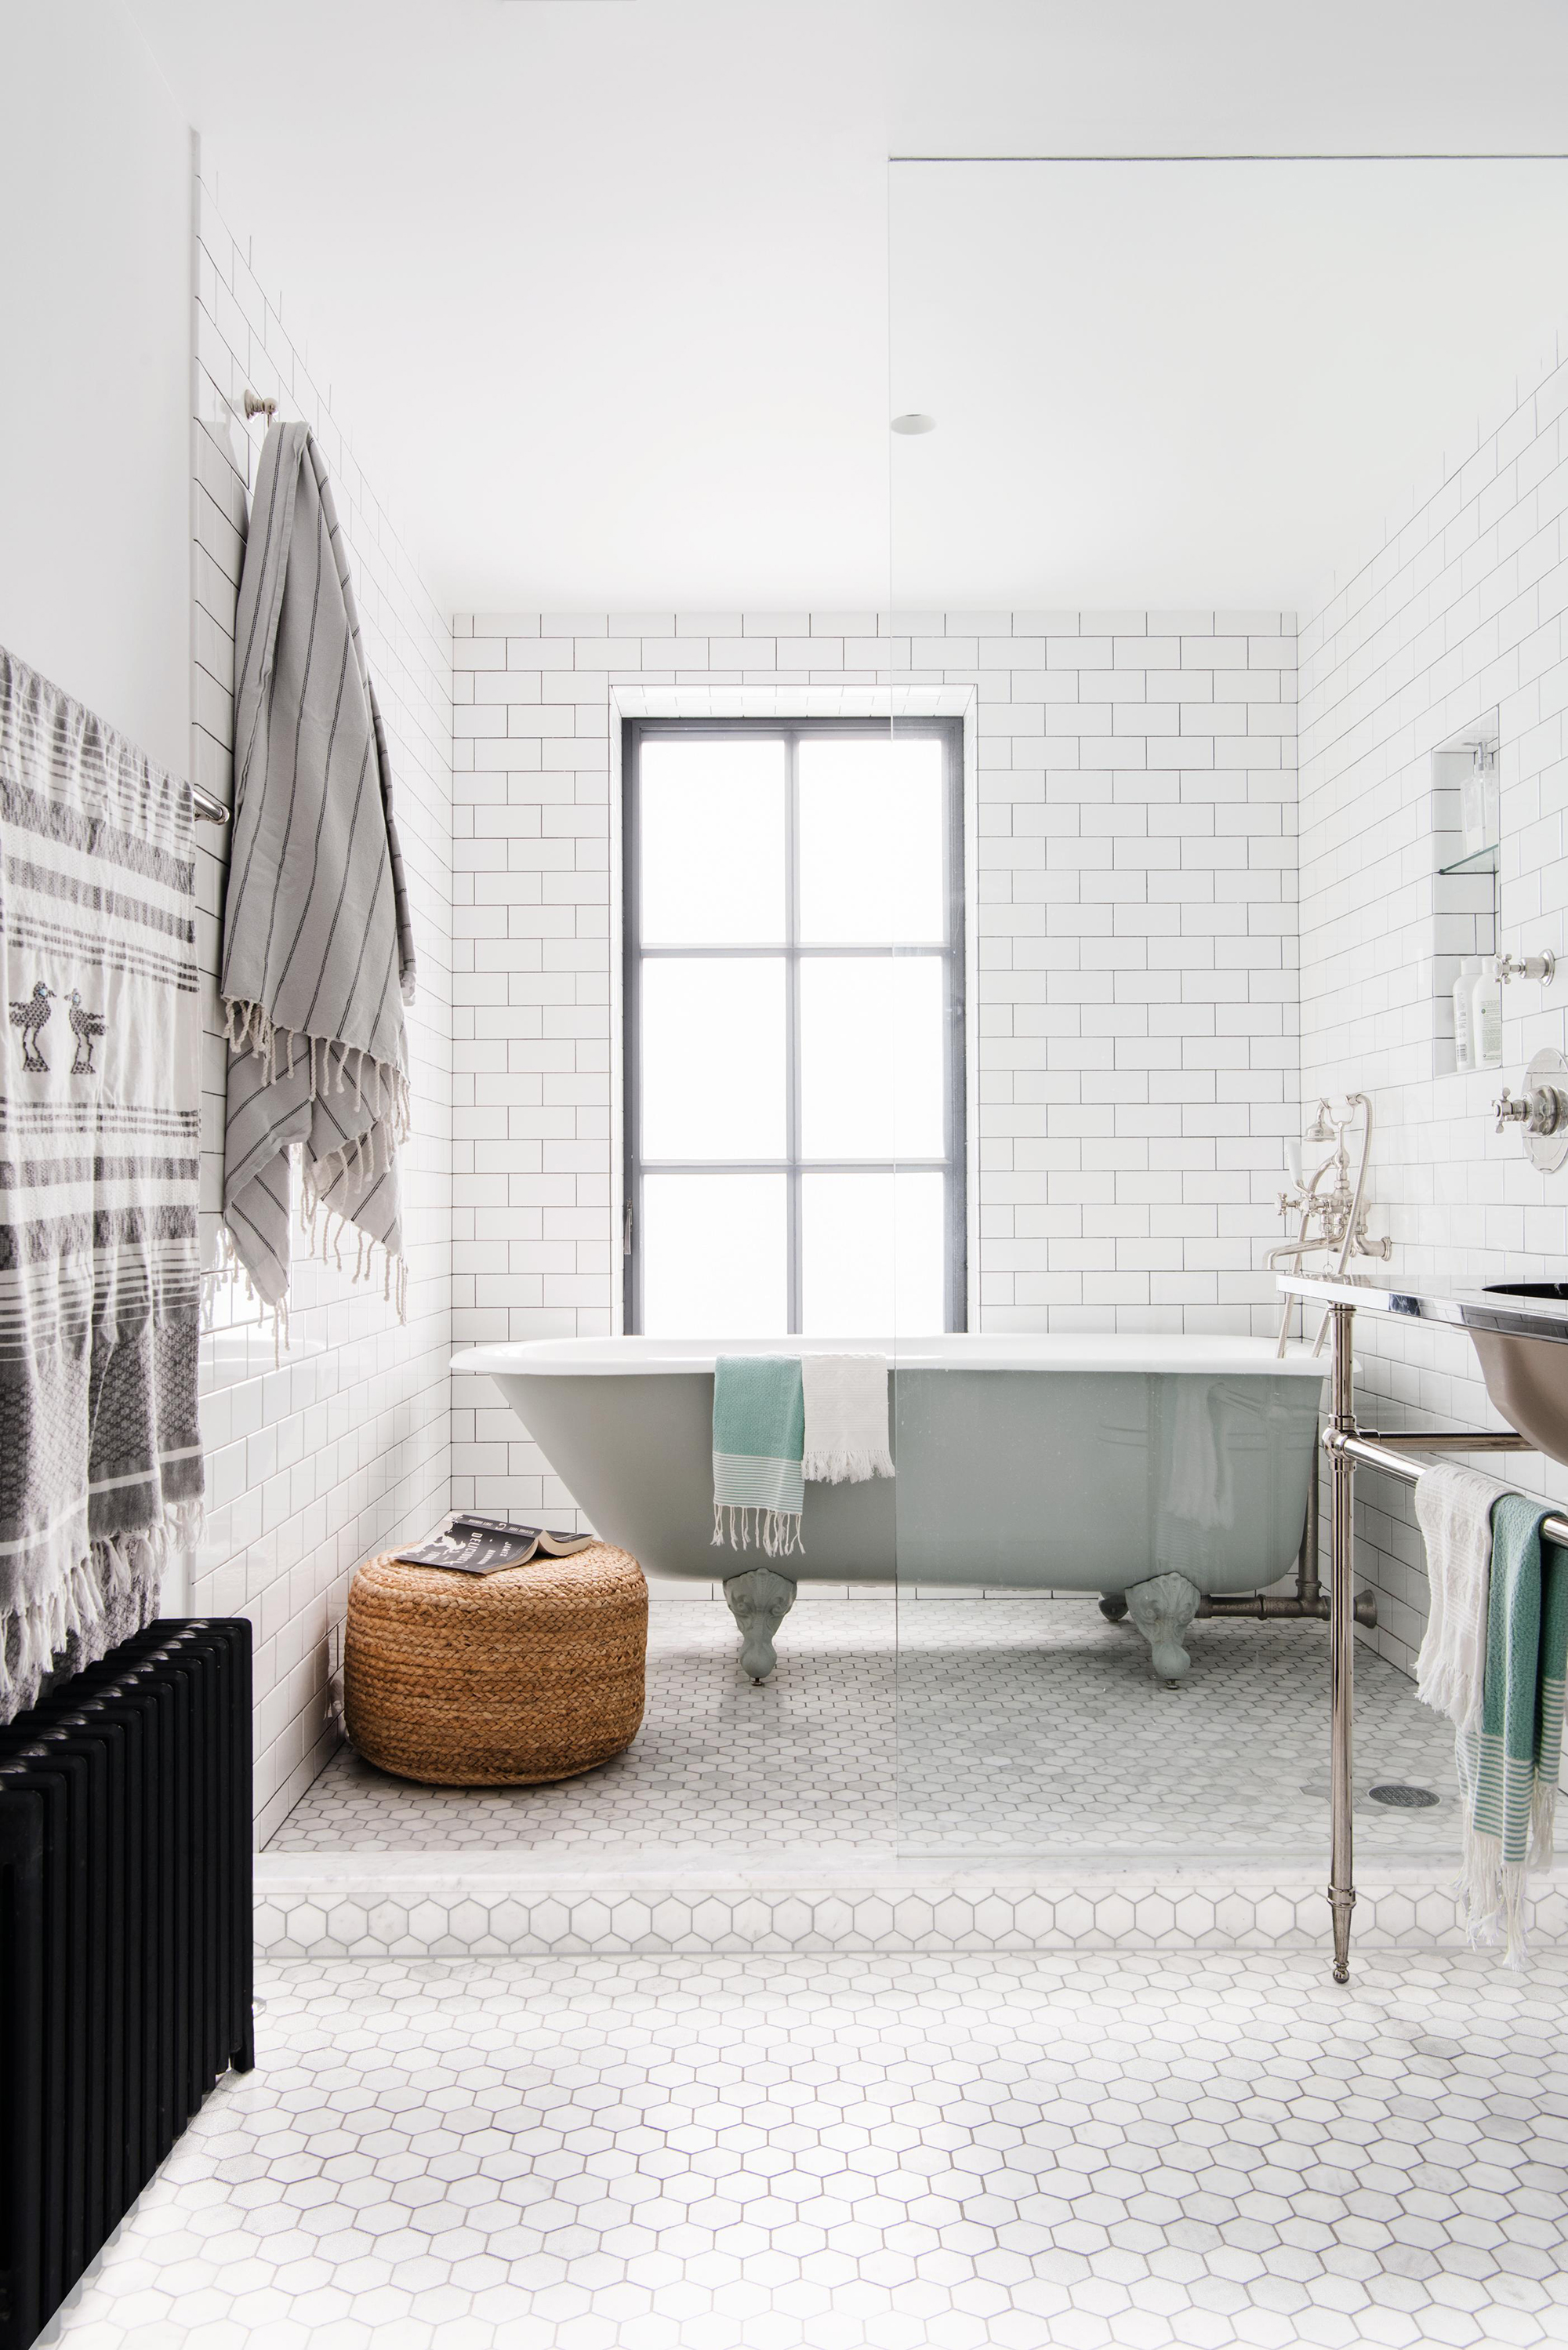 12 Smart Ways to Upgrade Your Bathroom Without Renovating It